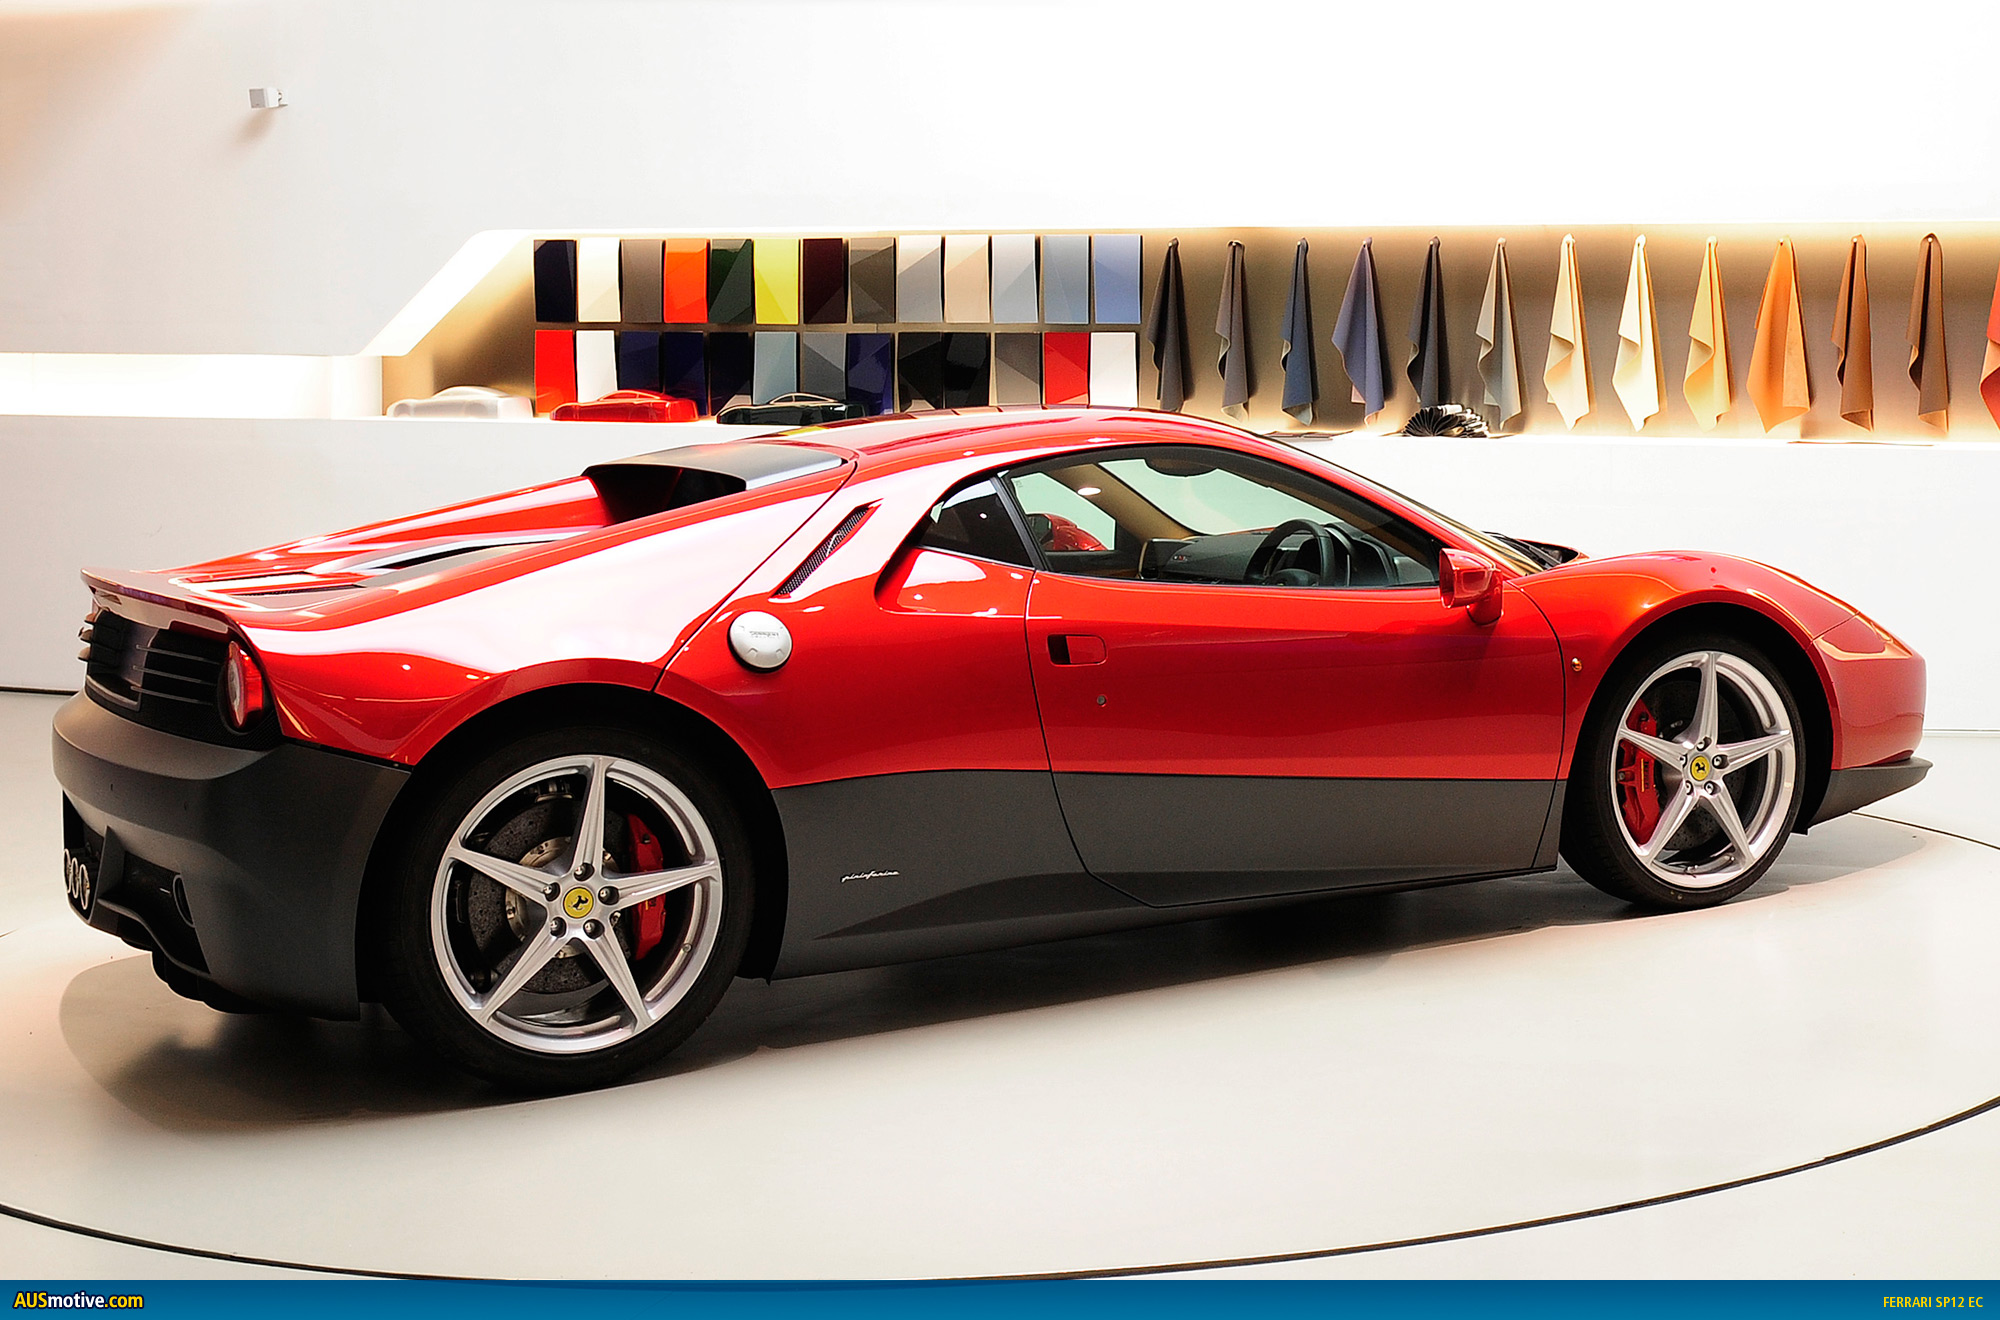 eric clapton officially gets his ferrari sp12 ec. Black Bedroom Furniture Sets. Home Design Ideas